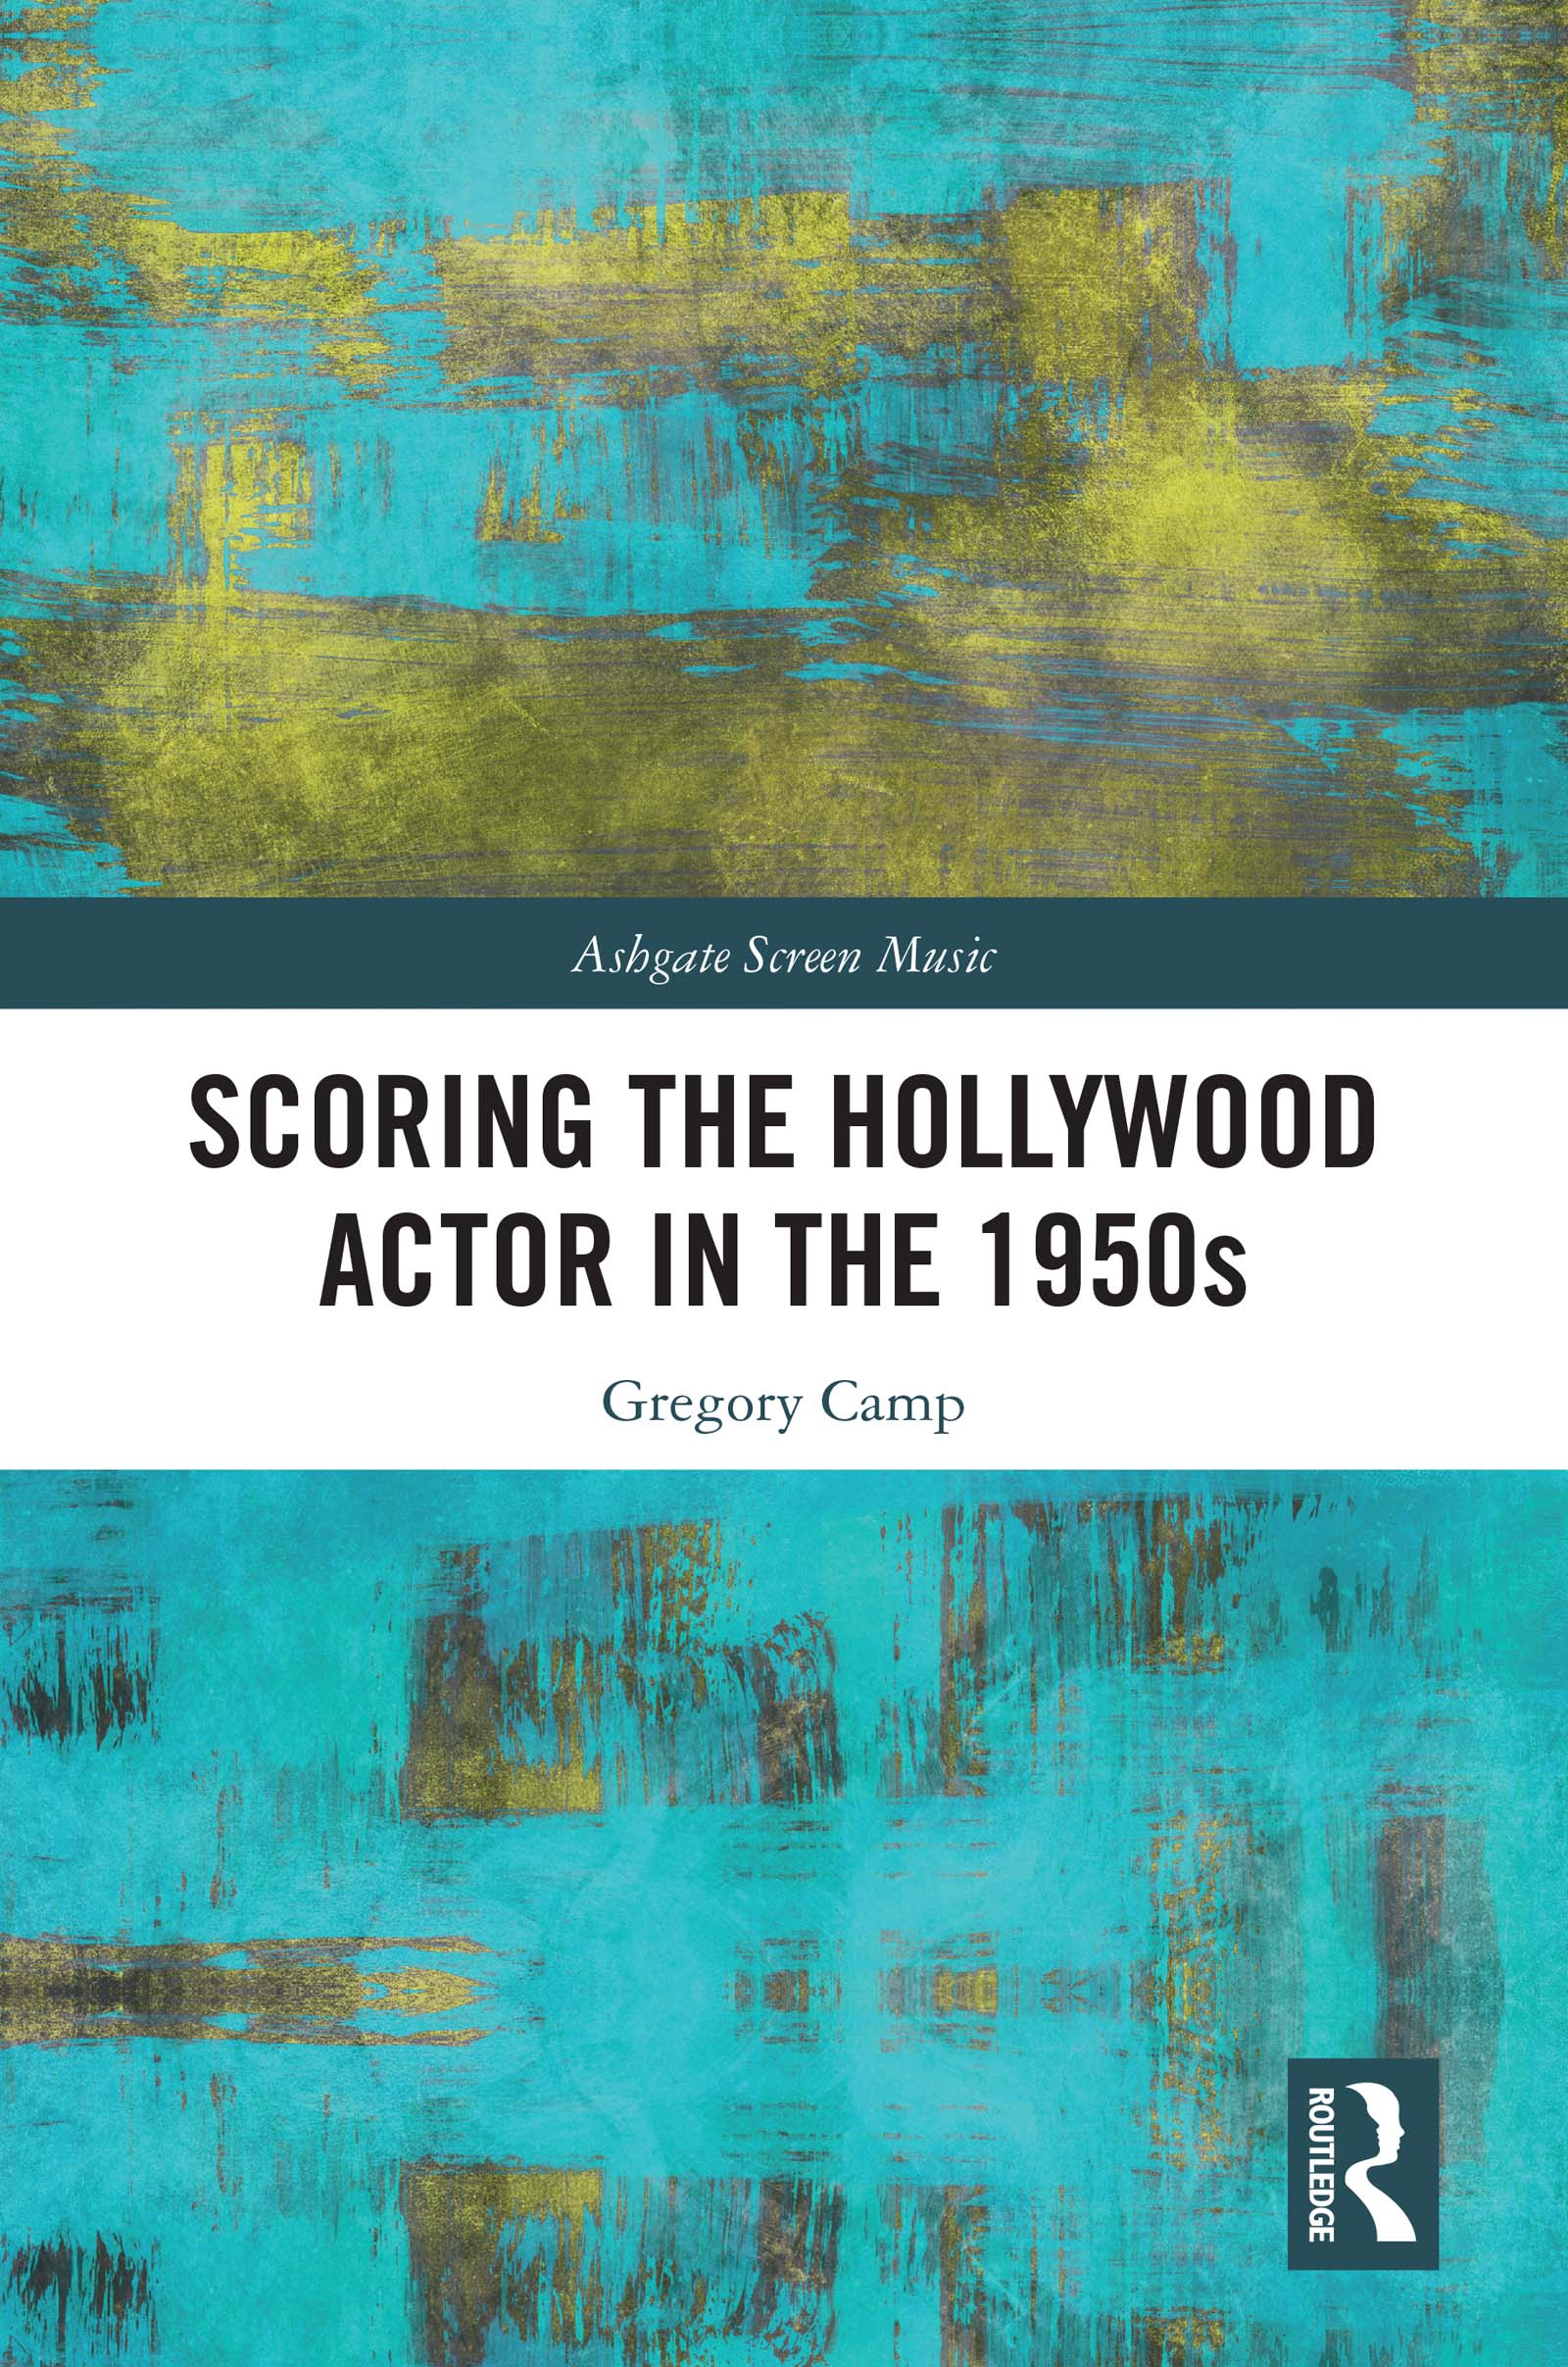 Hitchcock's time-vectors of acting and music